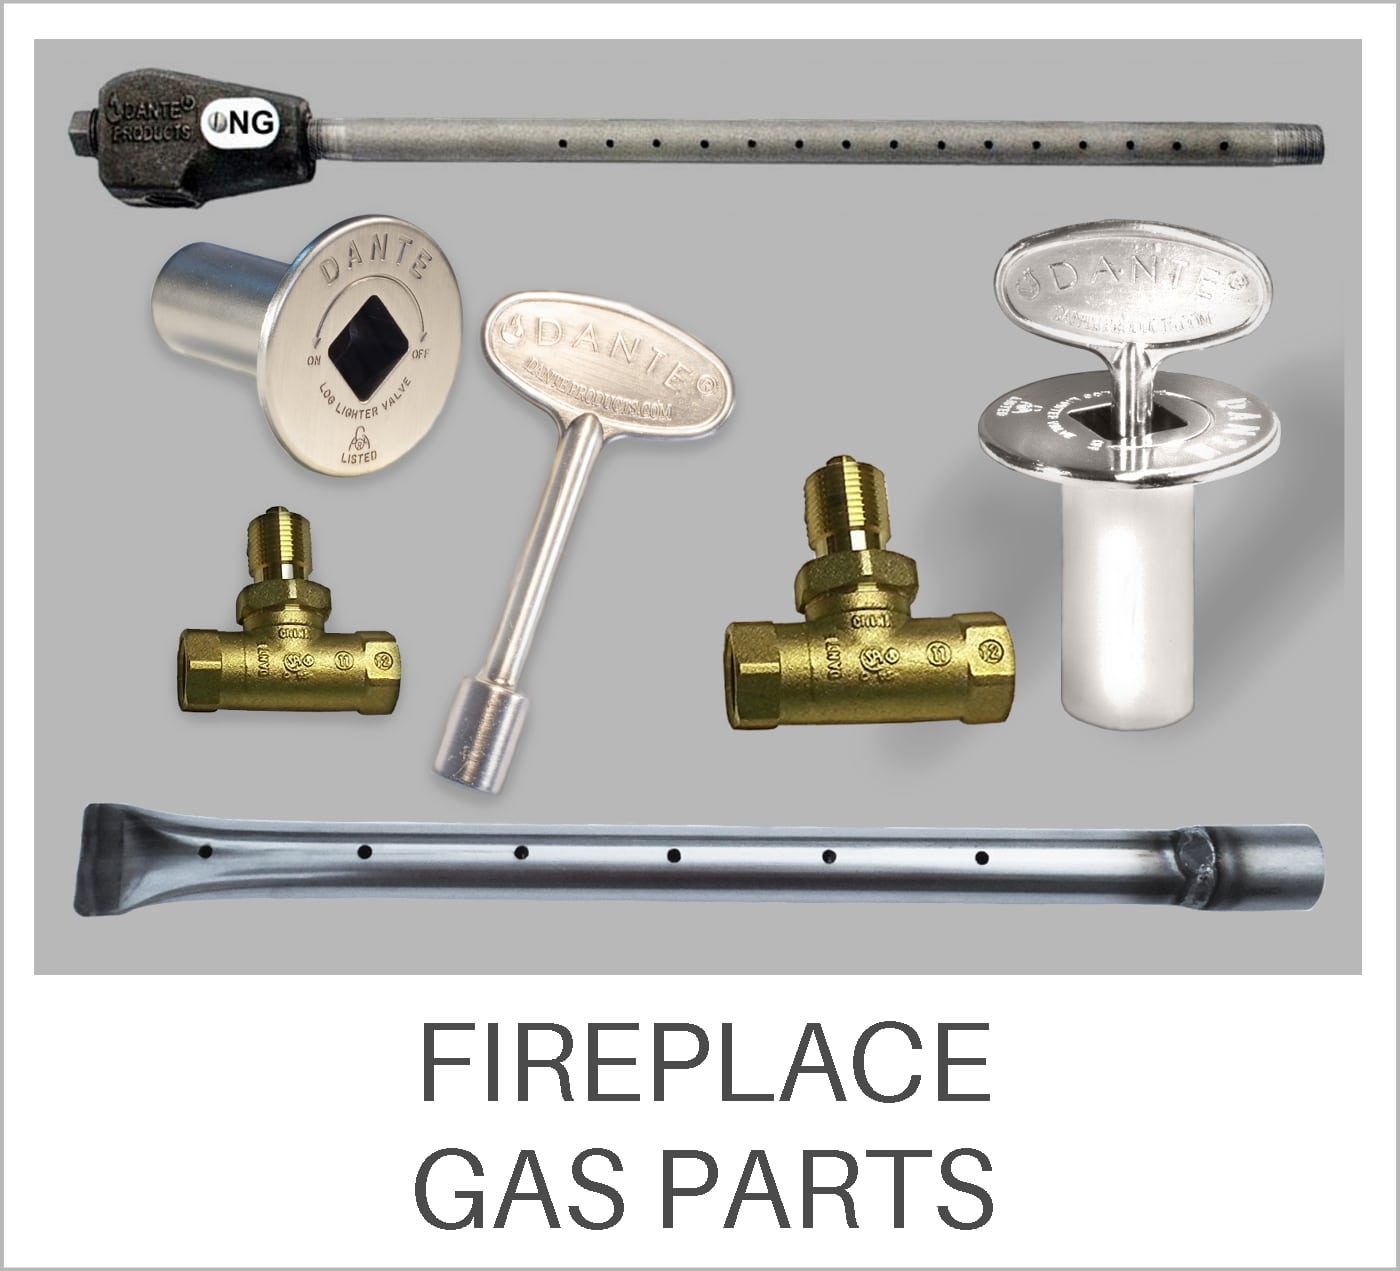 Fireplace Gas Parts Learning Center